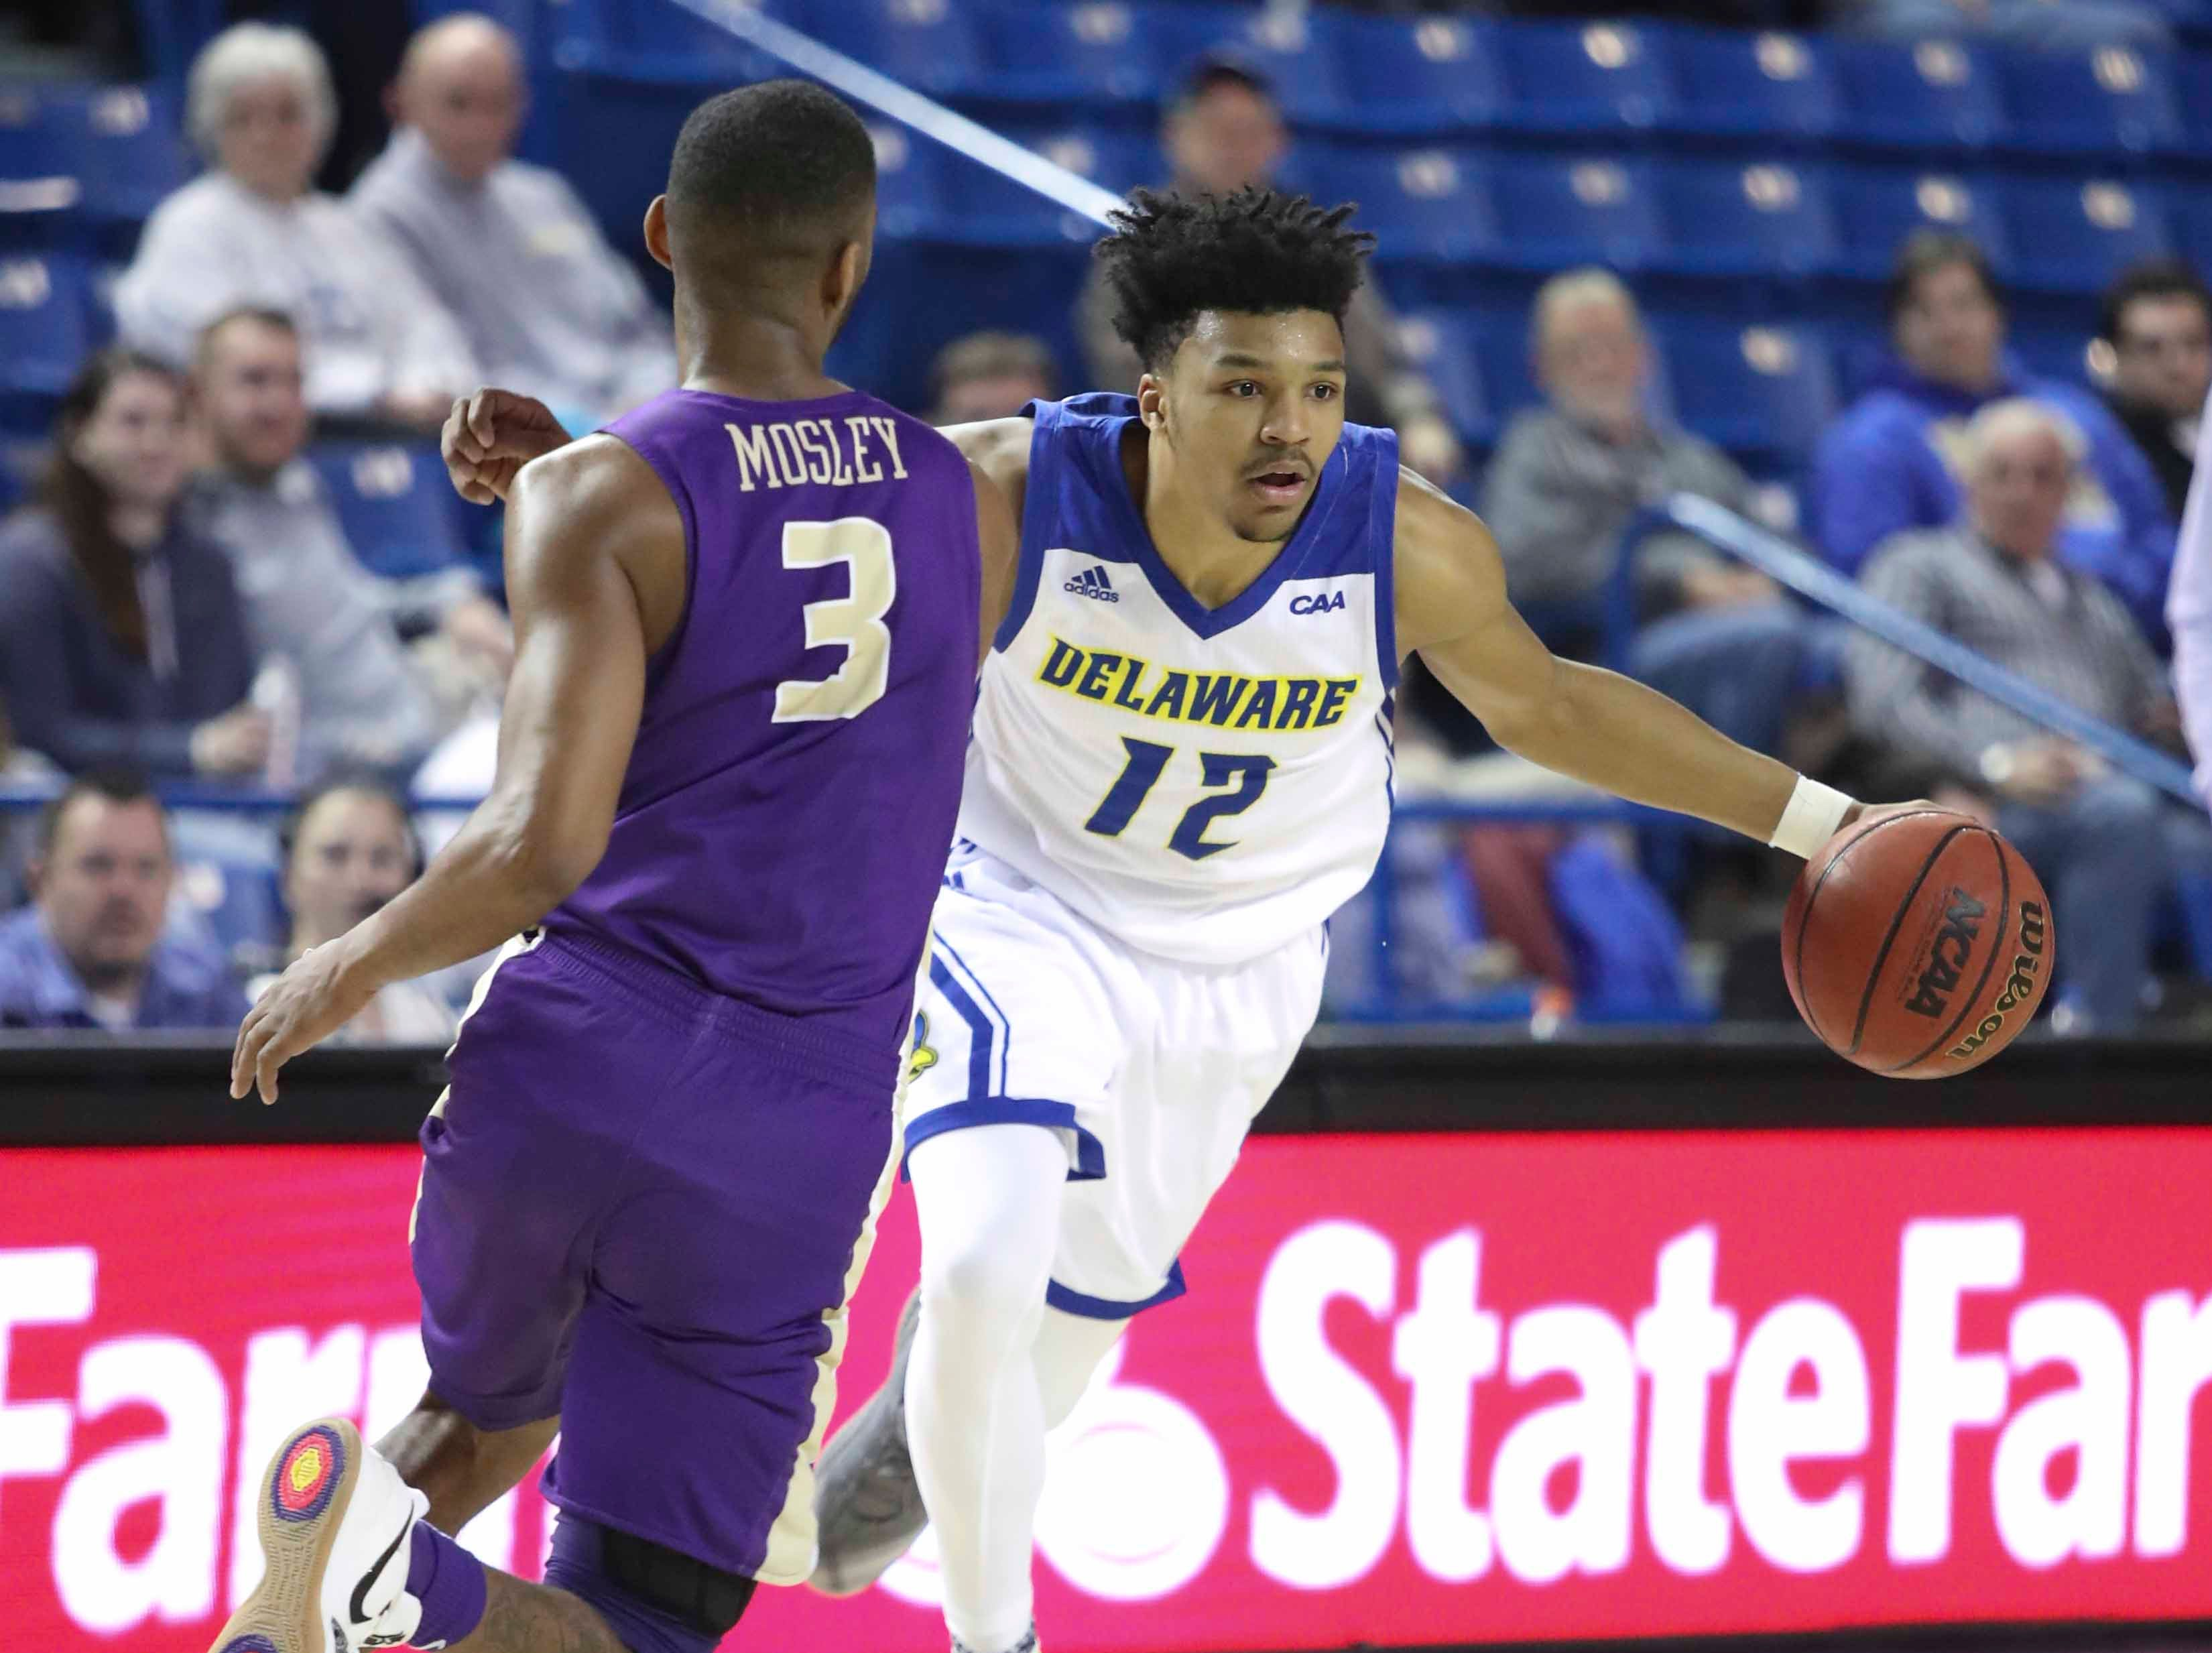 Delaware's Ithiel Horton dribbles against James Madison's Stuckey Mosley in the second half of the Blue Hens' 76-69 win at the Bob Carpenter Center Thursday.